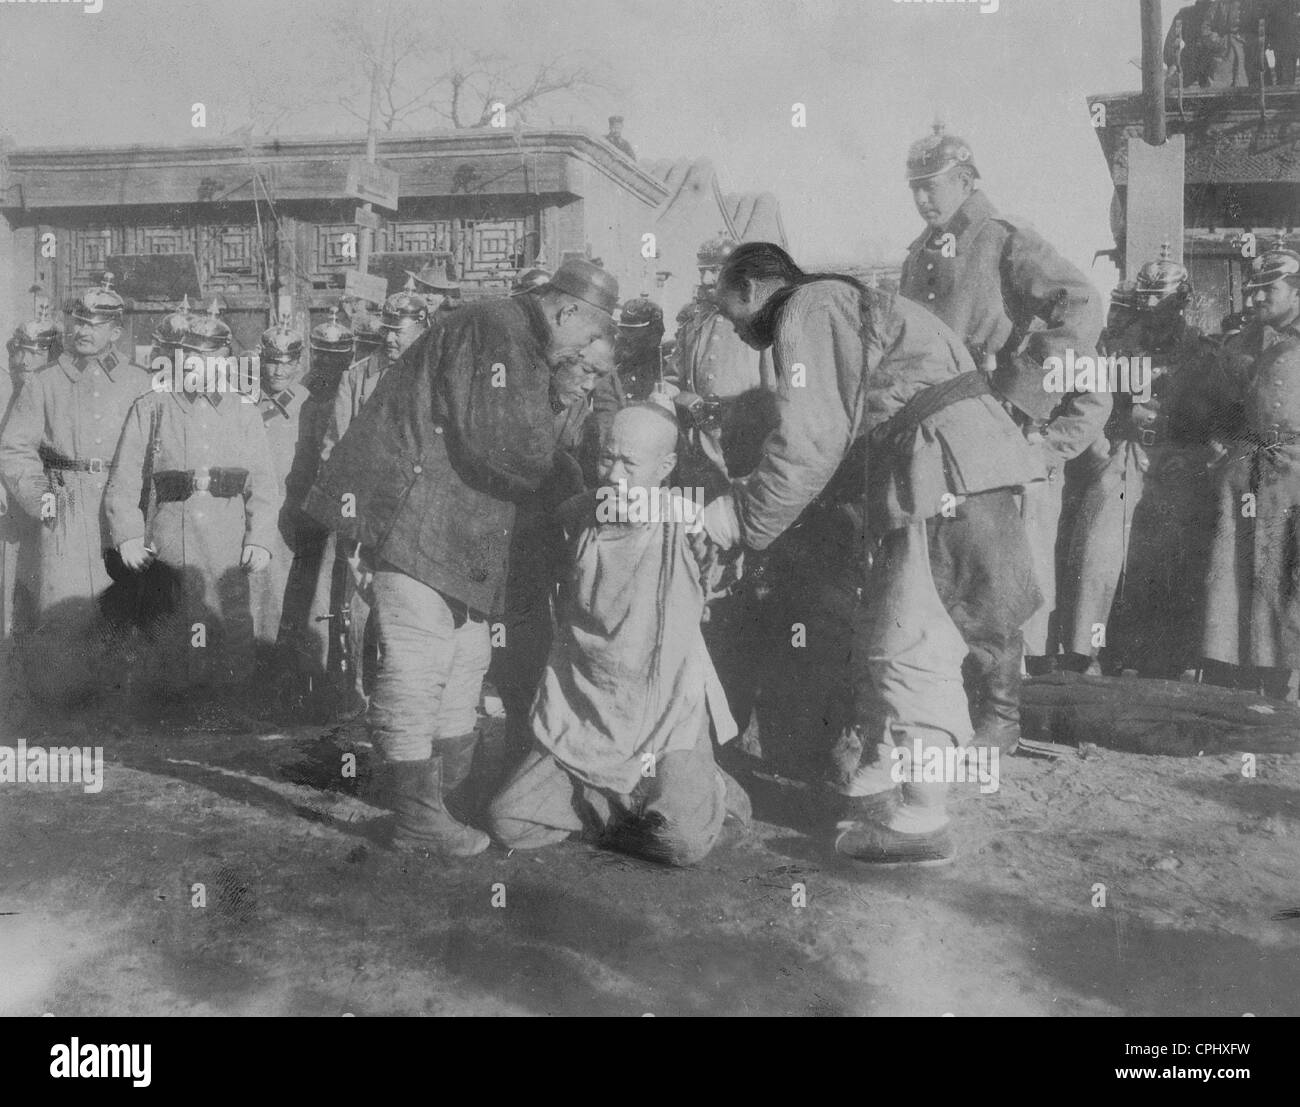 Executions during the Boxer Rebellion, 1900 - Stock Image